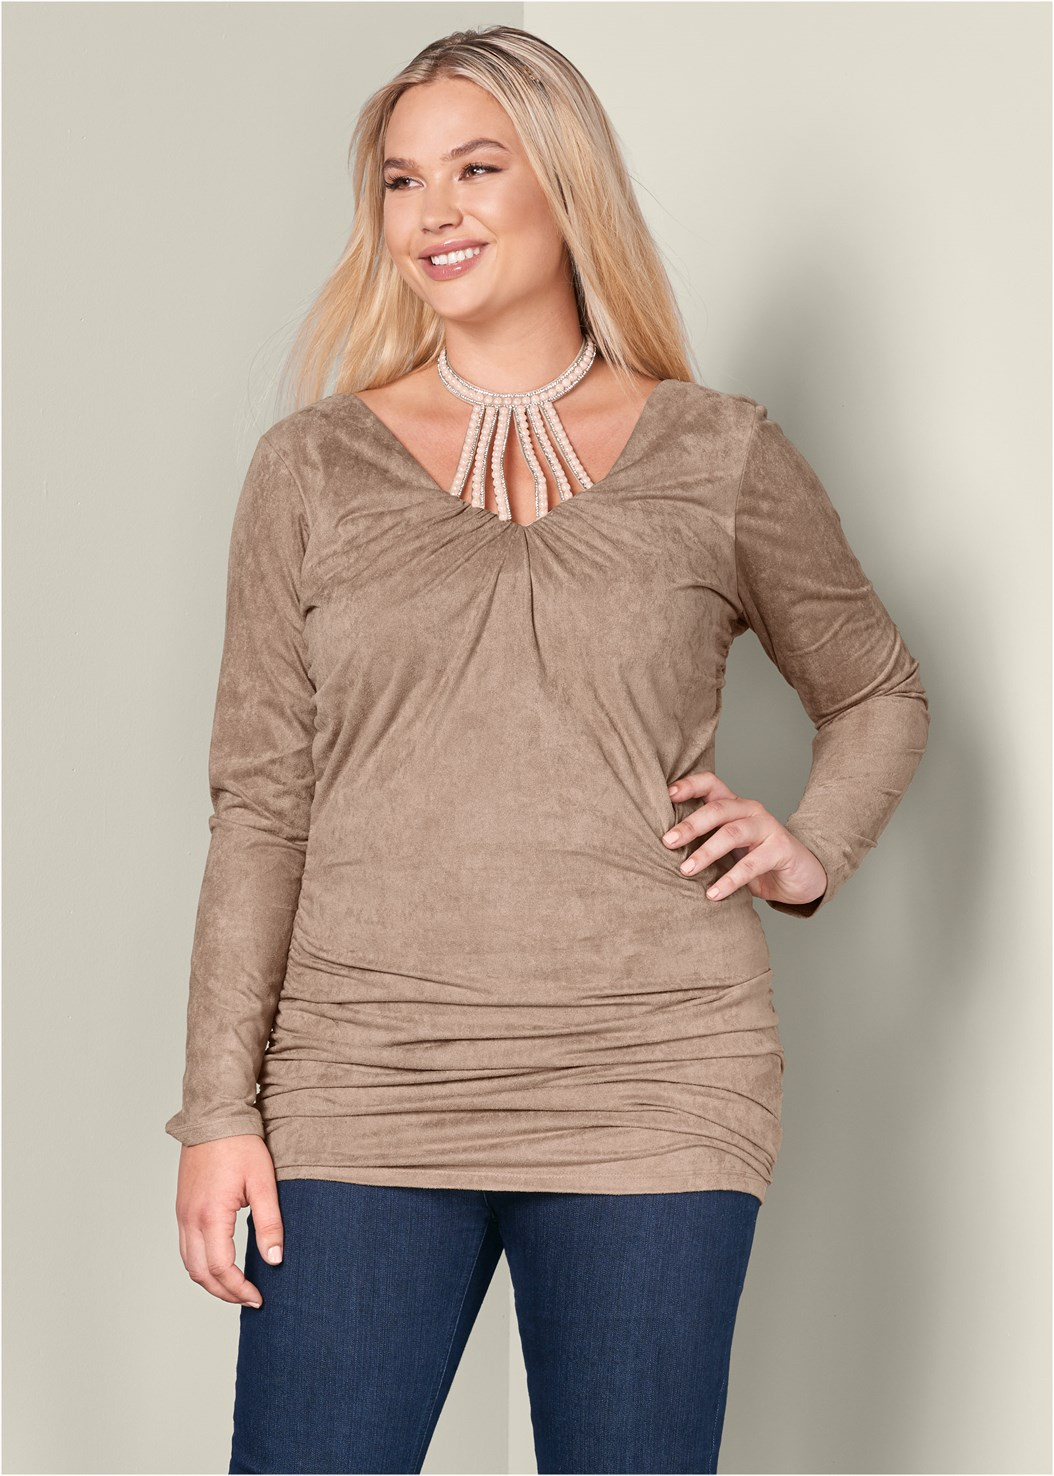 Faux Suede Tunic,Mid Rise Slimming Stretch Jeggings